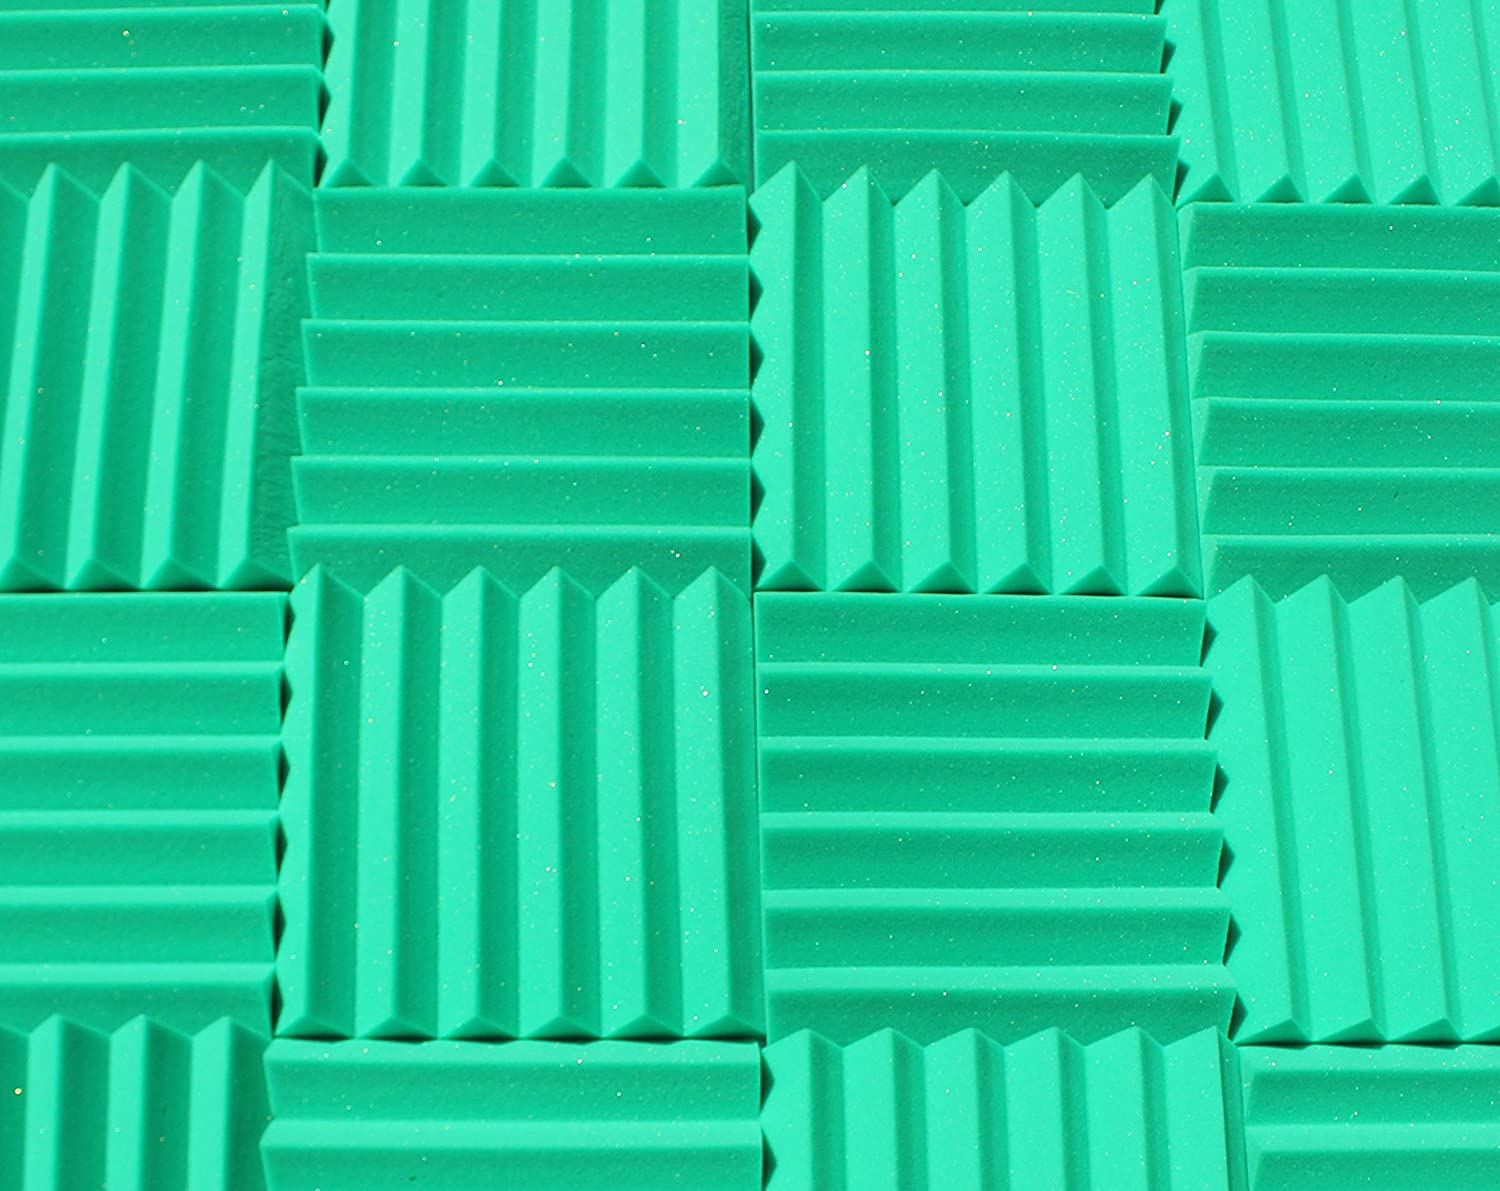 "Soundproofing Acoustic Studio Foam - Kelly Green Color - Wedge Style Panels 12""x12""x2"" Tiles - 4 Pack"